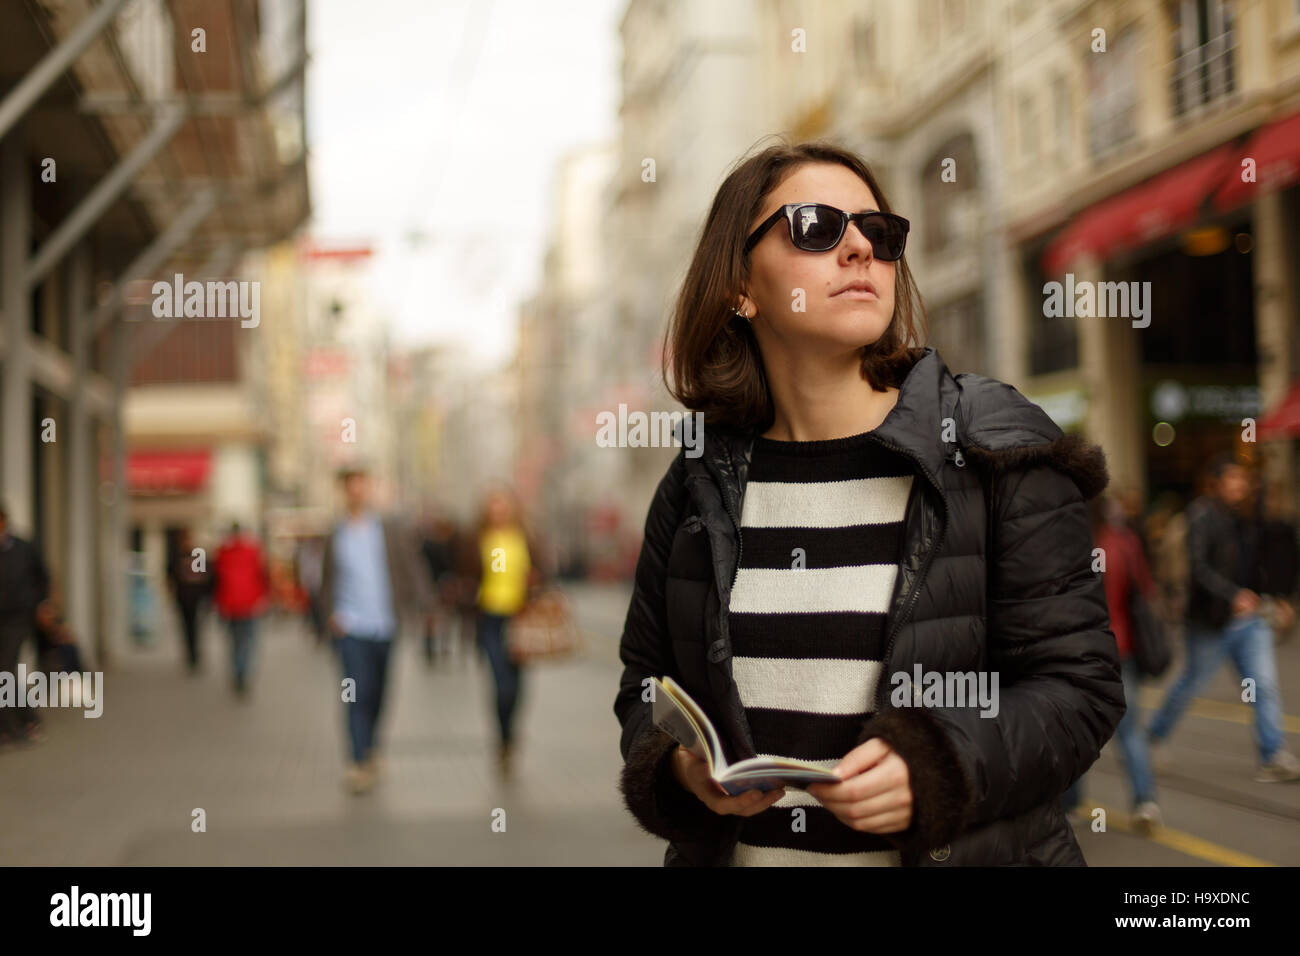 Young woman is on the street and looking for a place to visit ,they are using a travel guide to explore where they - Stock Image